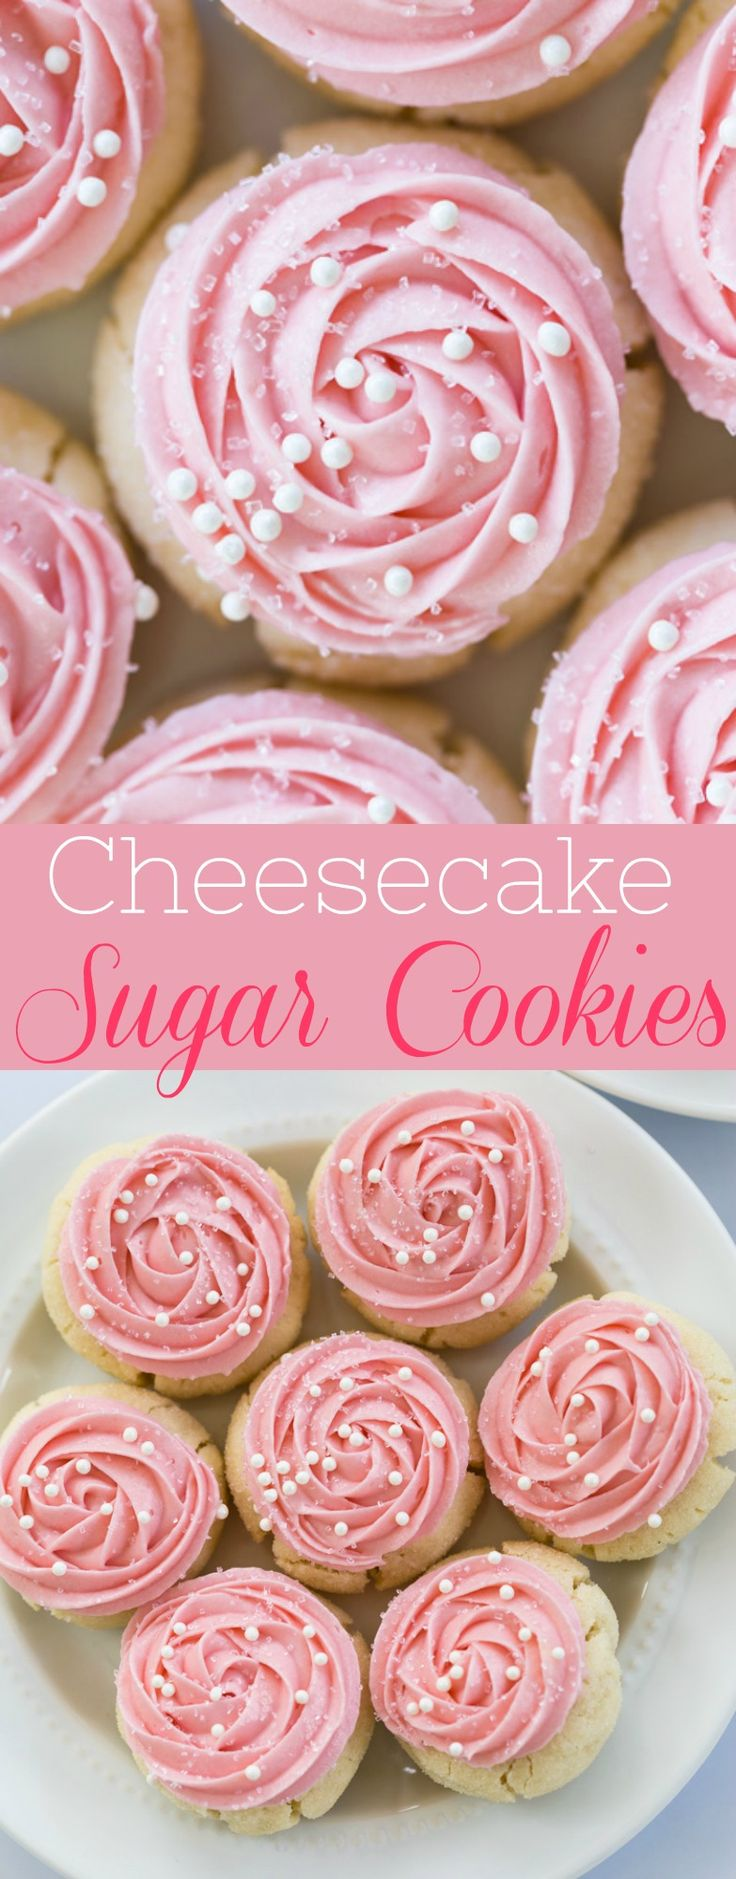 Sweet, chewy sugar cookies topped with a smooth and creamy, cheesecake frosting with an easy floral design.   #BRMCares #sponsored